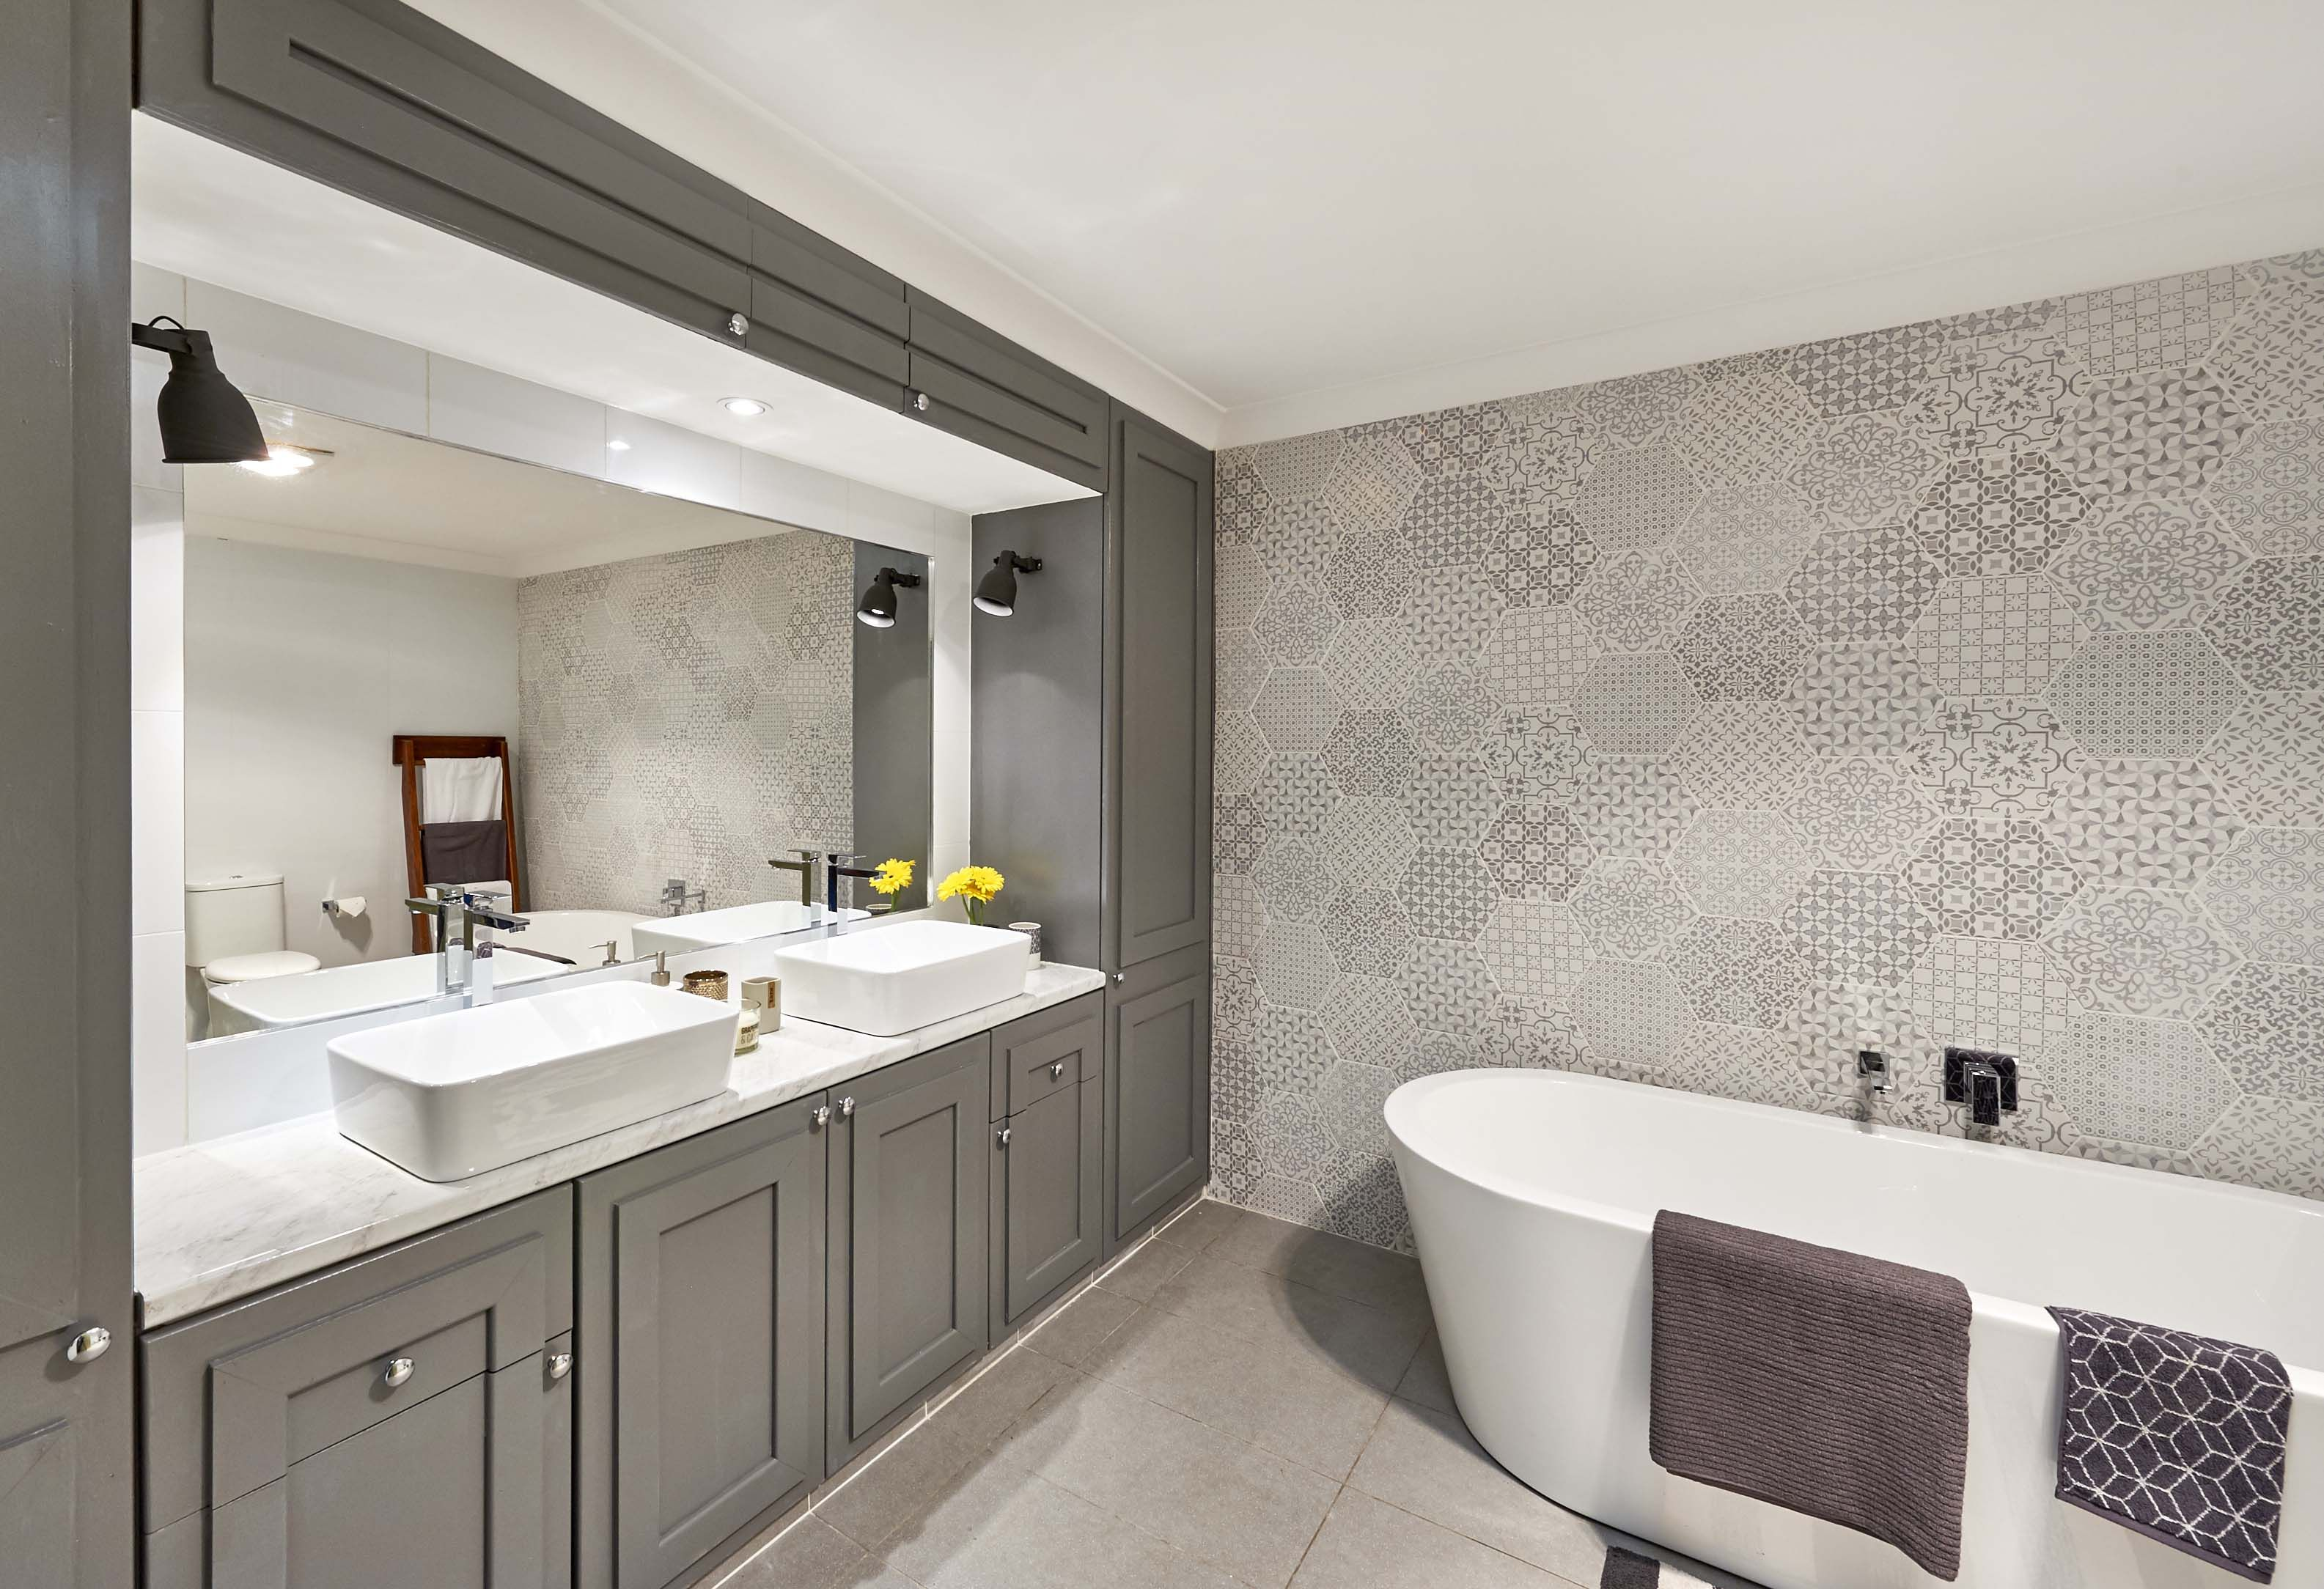 Real Homes Two Bathrooms Transformed For Just And - Bathroom labour costs